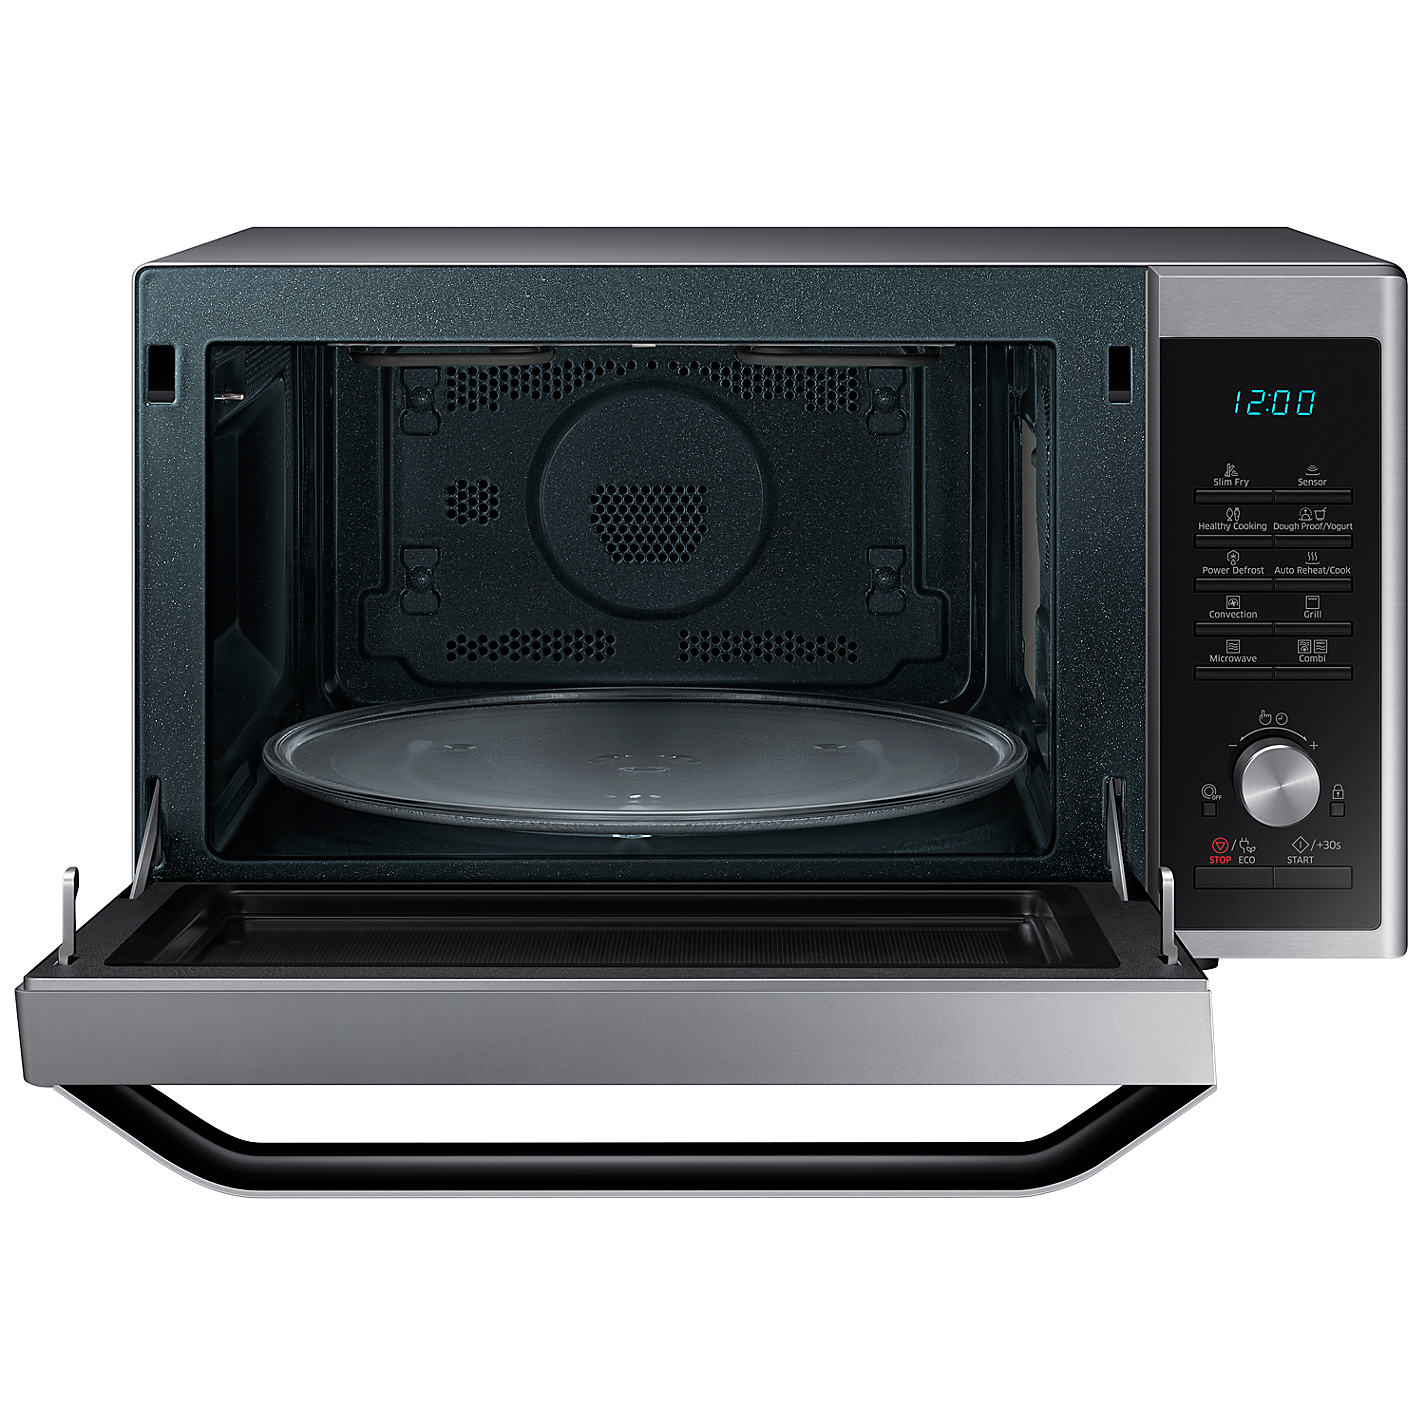 Samsung Mc32j7055ct Freestanding Microwave Oven Stainless Steel Online At Johnlewis